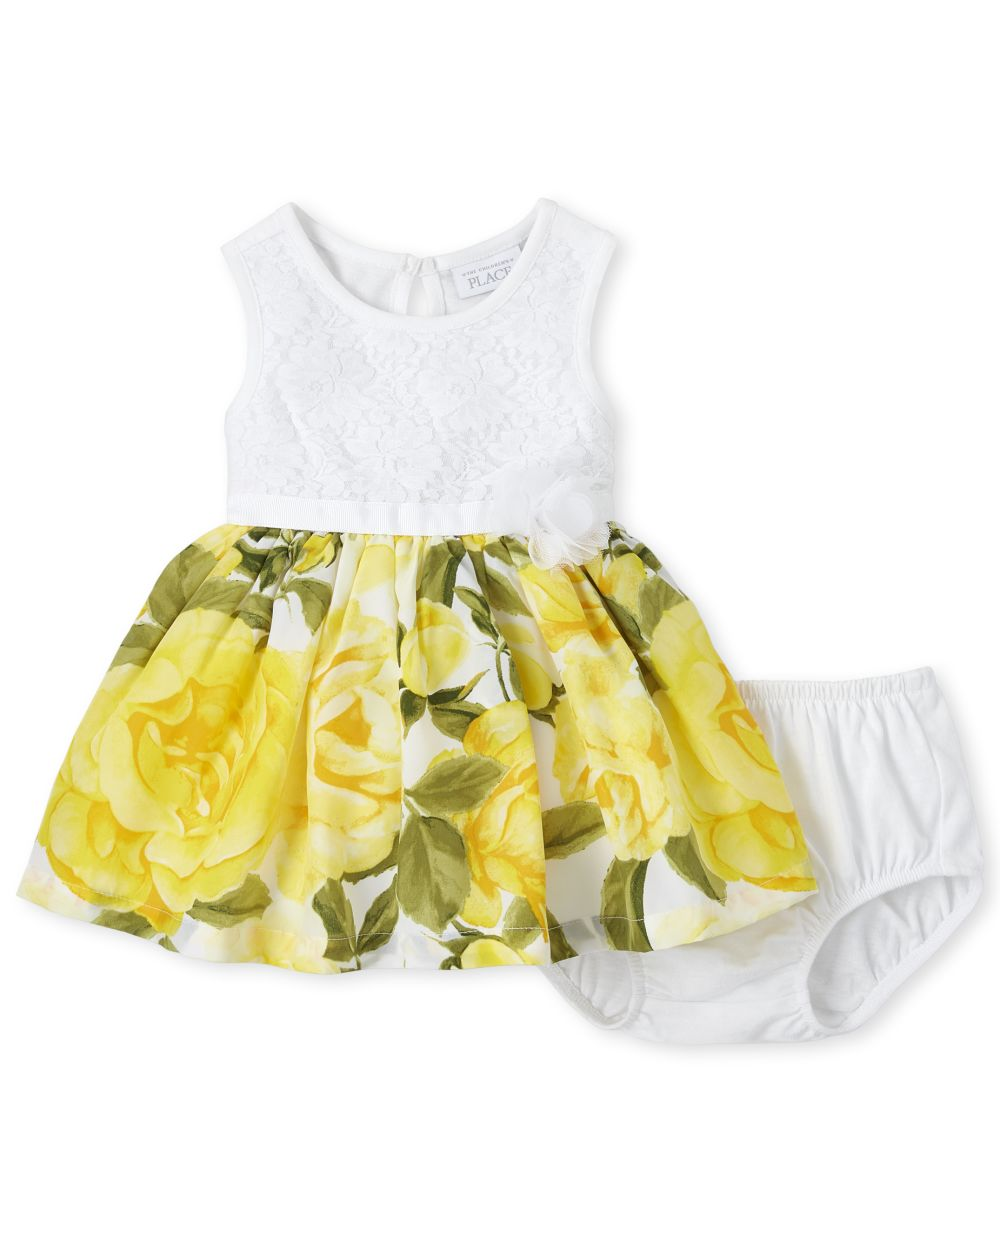 Baby Girls Lace Floral Knit To Woven Dress